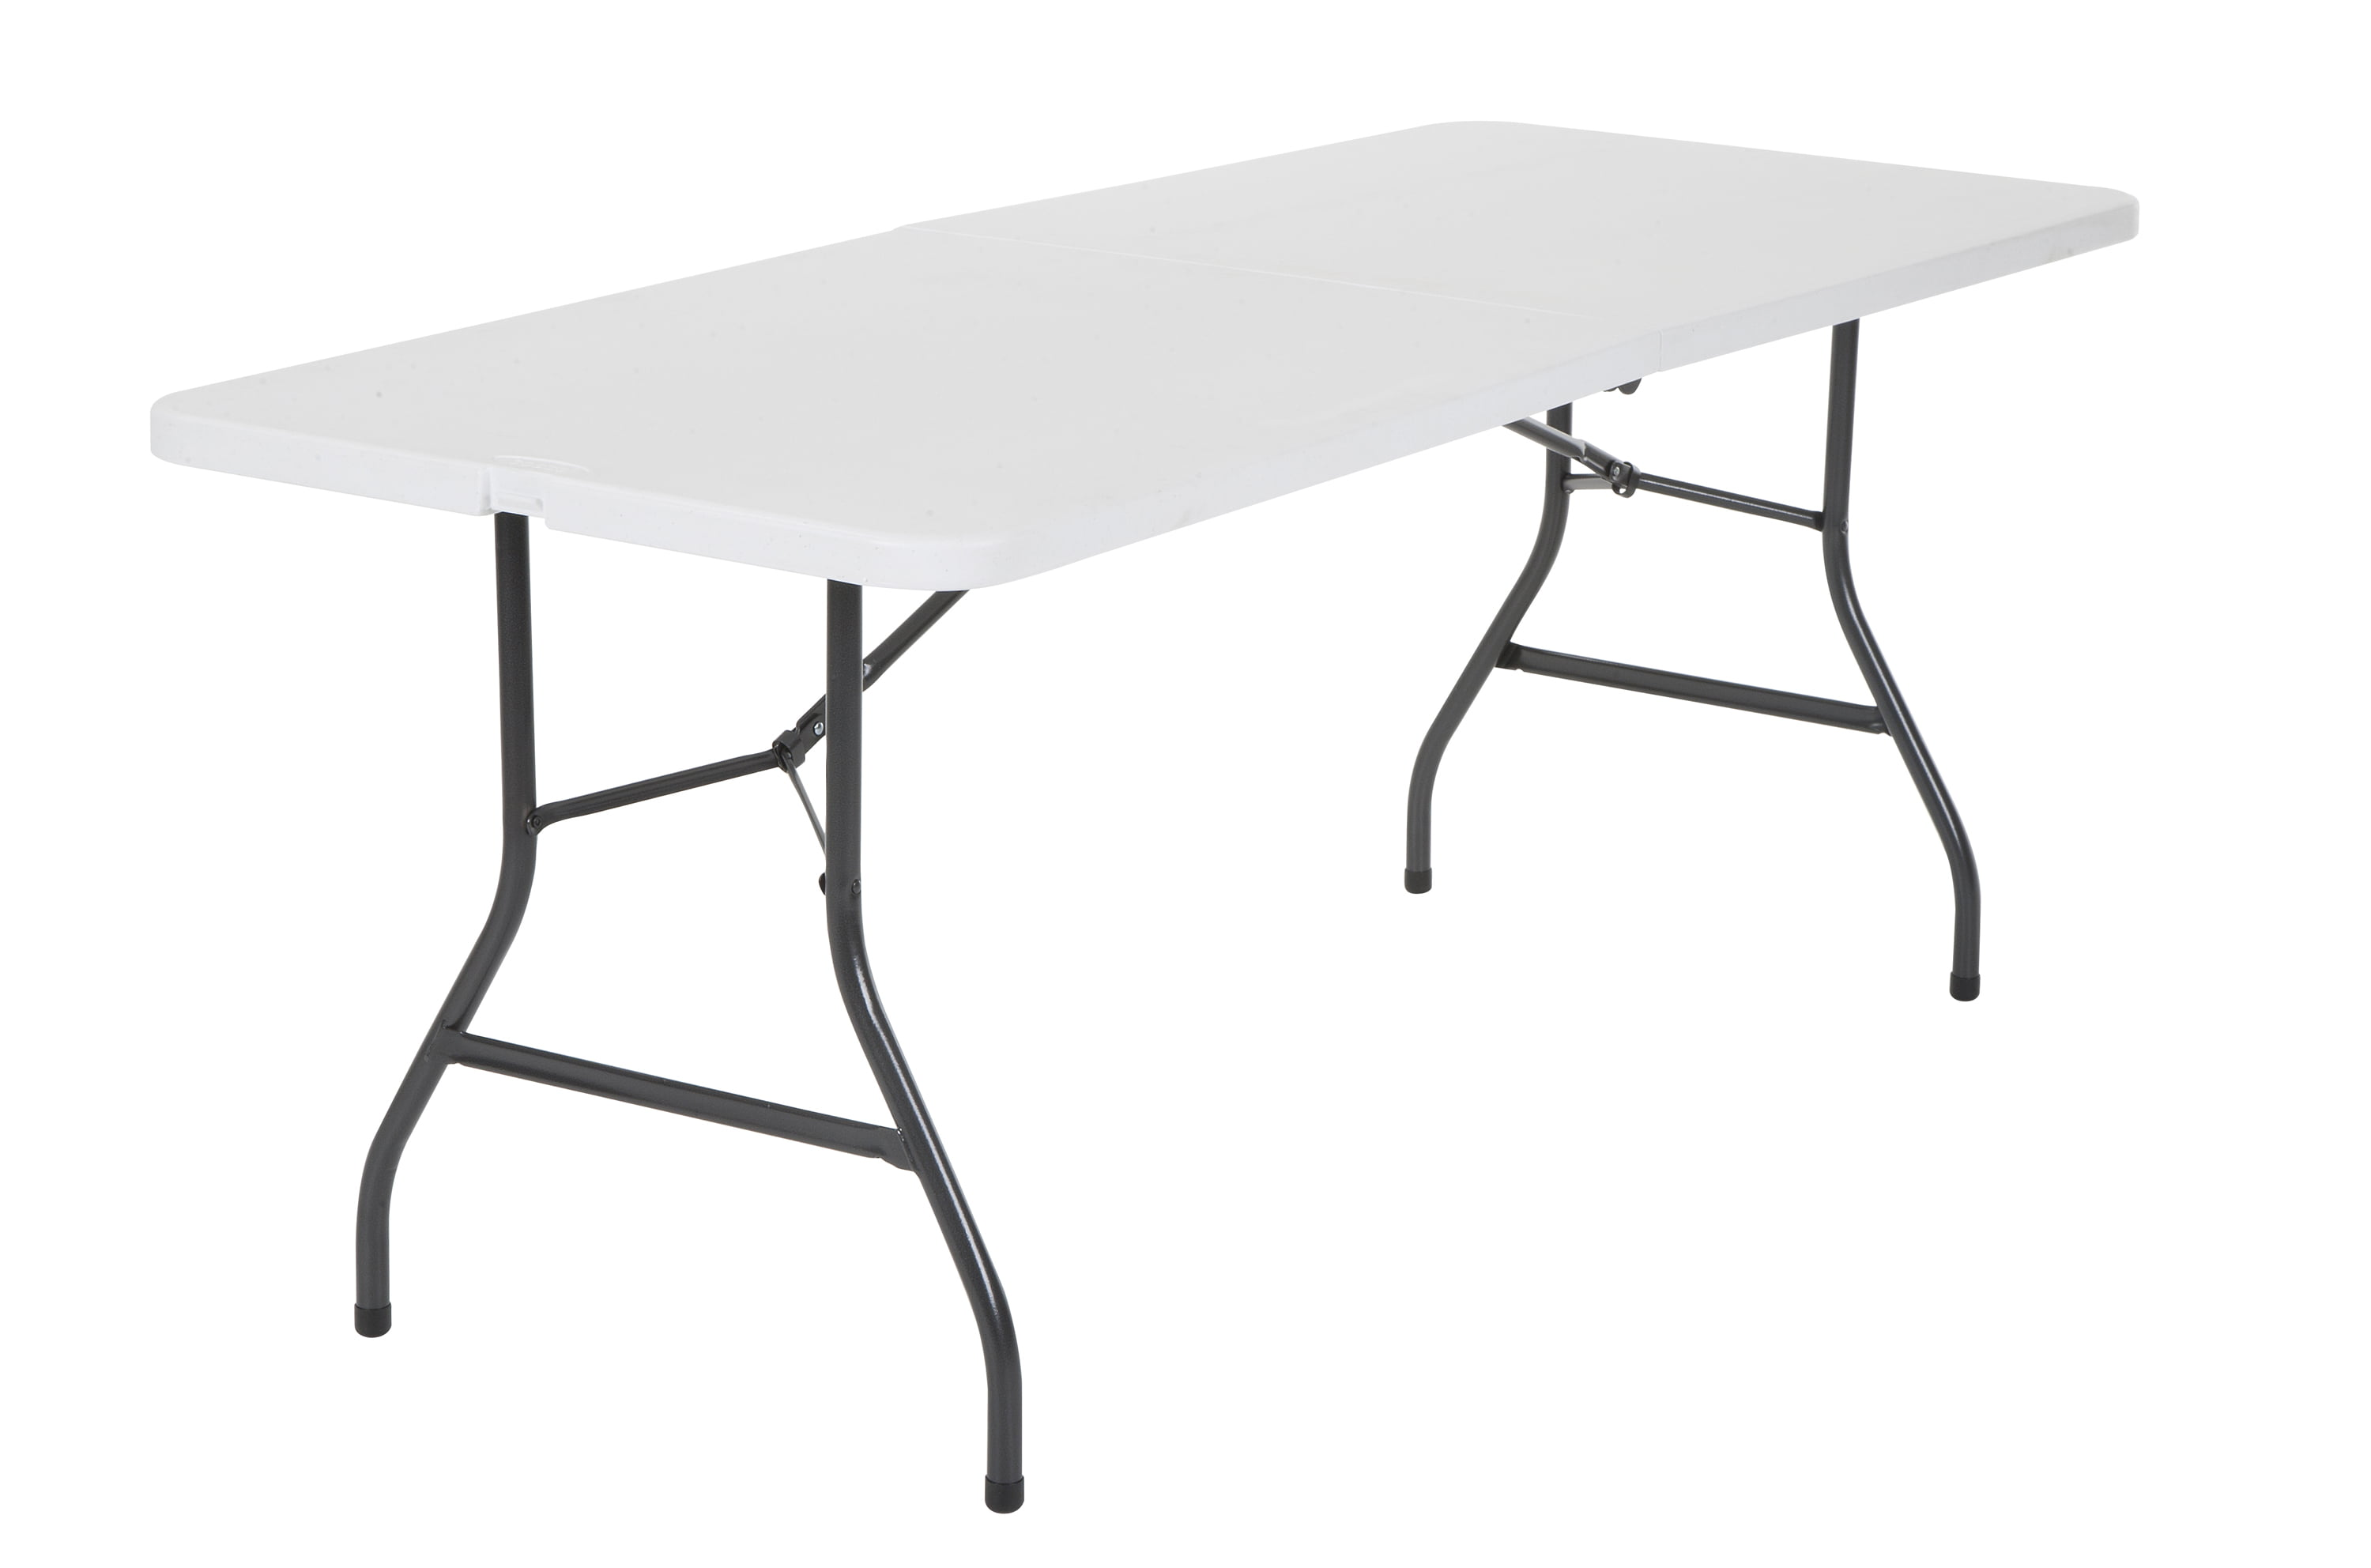 - Office Centerfold Folding Table White 6 Foot Portable Plastic Home